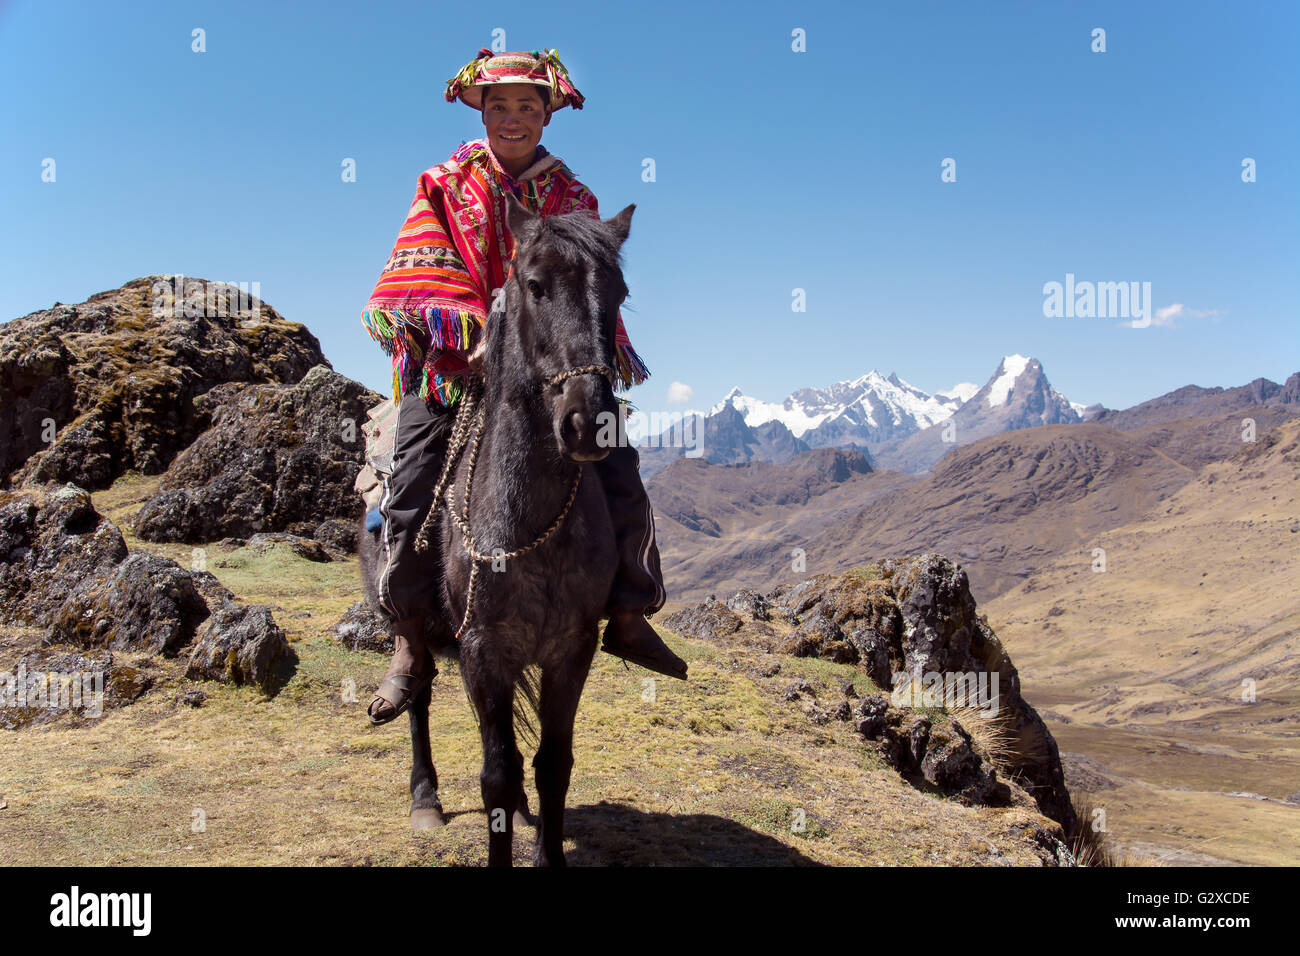 Indio mountain guide with colorful poncho riding on horse in the mountains, Andes, Lares, near Cusco, Peru - Stock Image